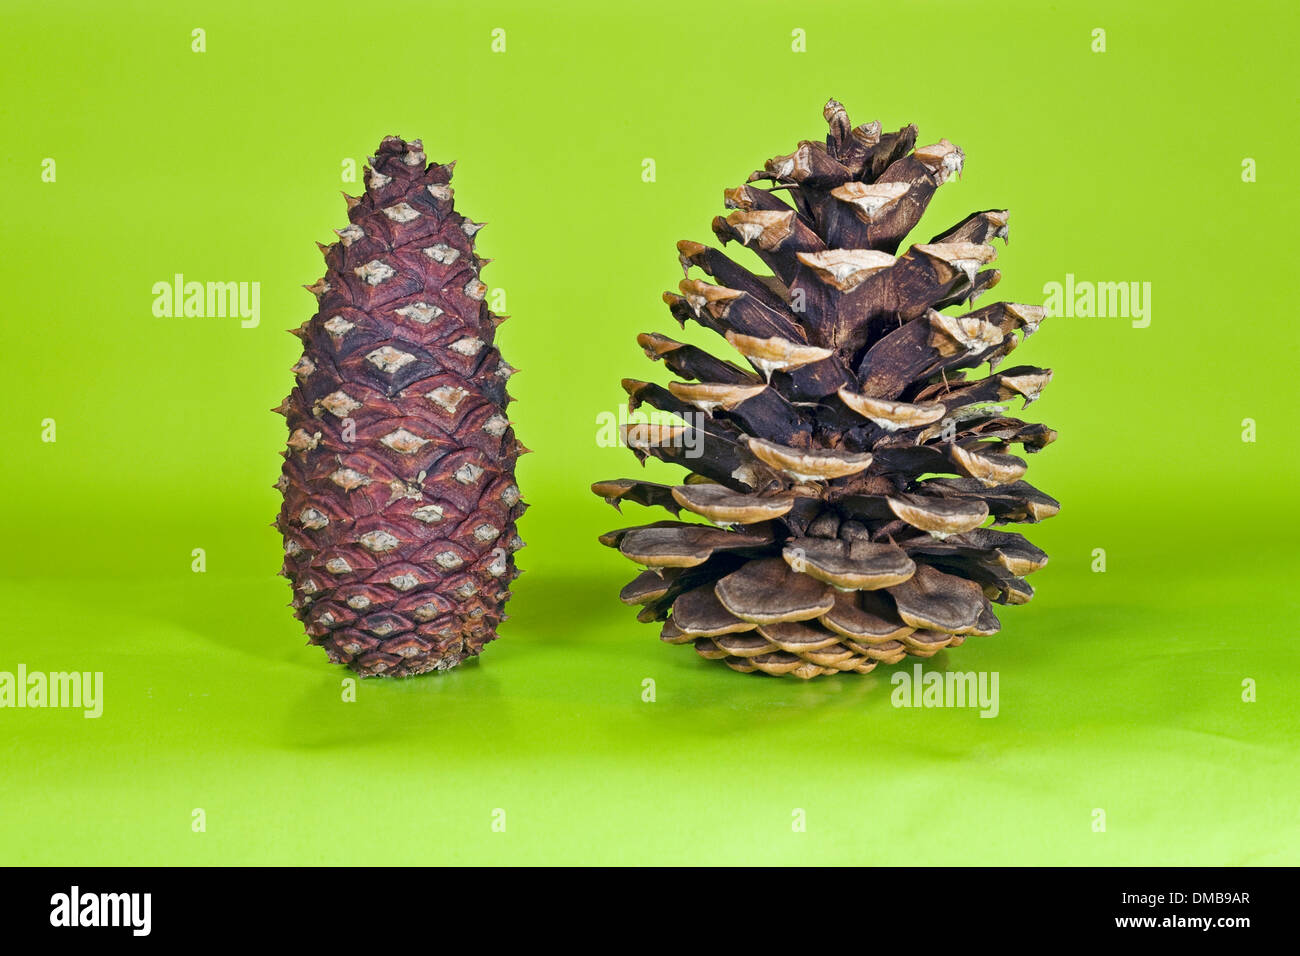 Pine cones from a ponderosa pine tree, one fully closed, one seeding - Stock Image